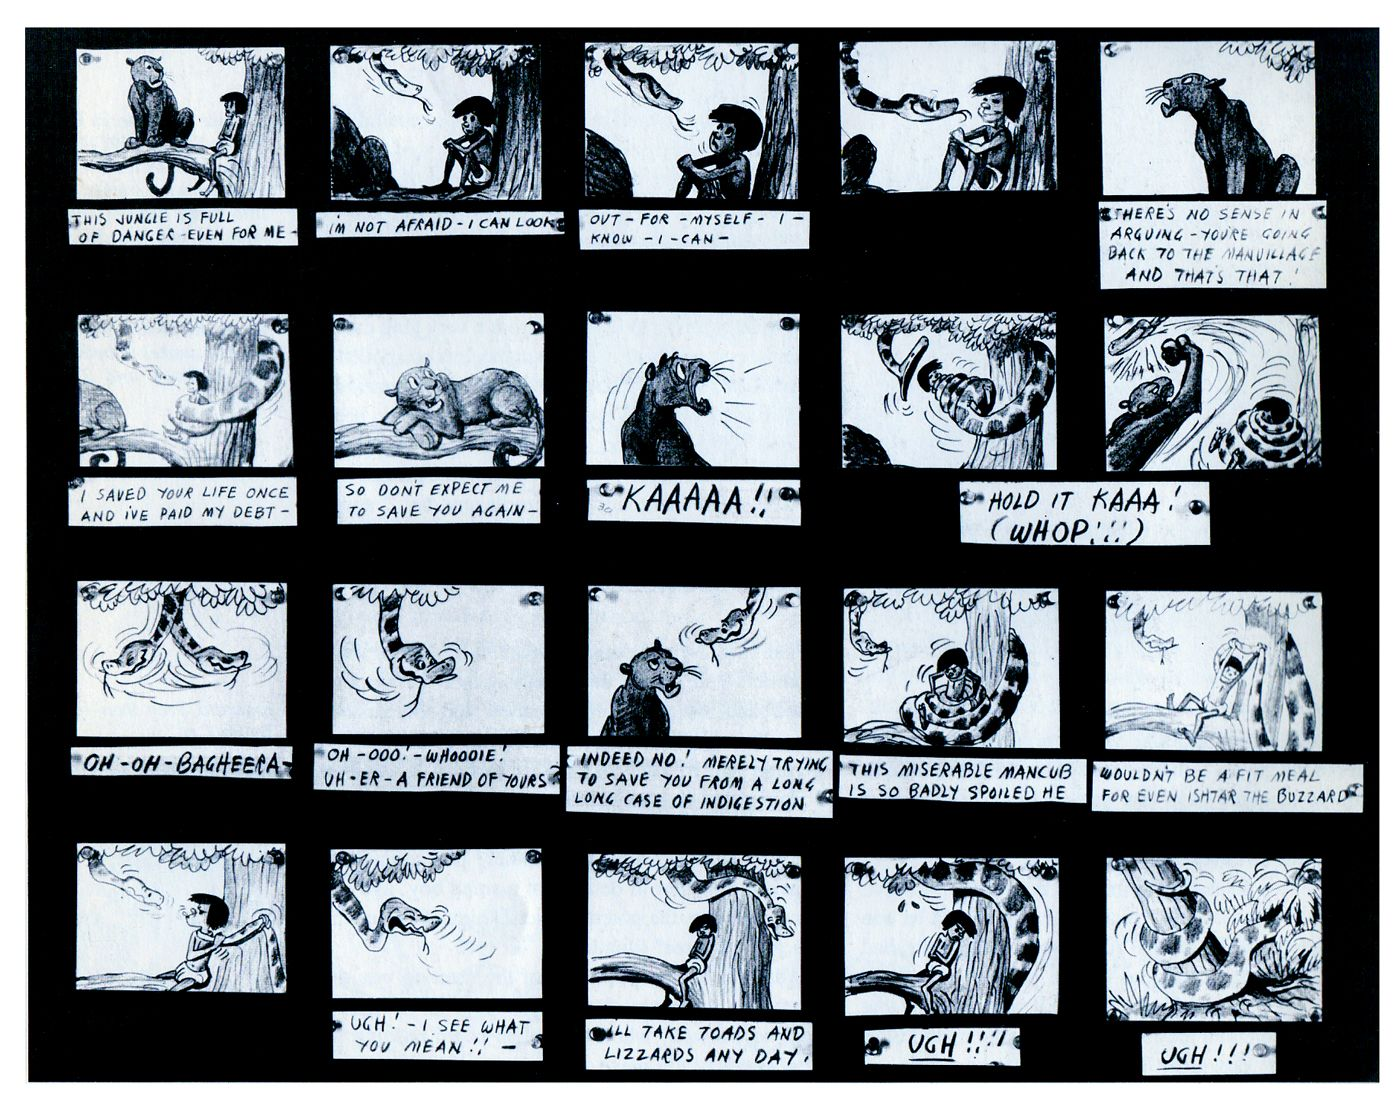 Here is an example of a storyboard from the film The Jungle Book ...